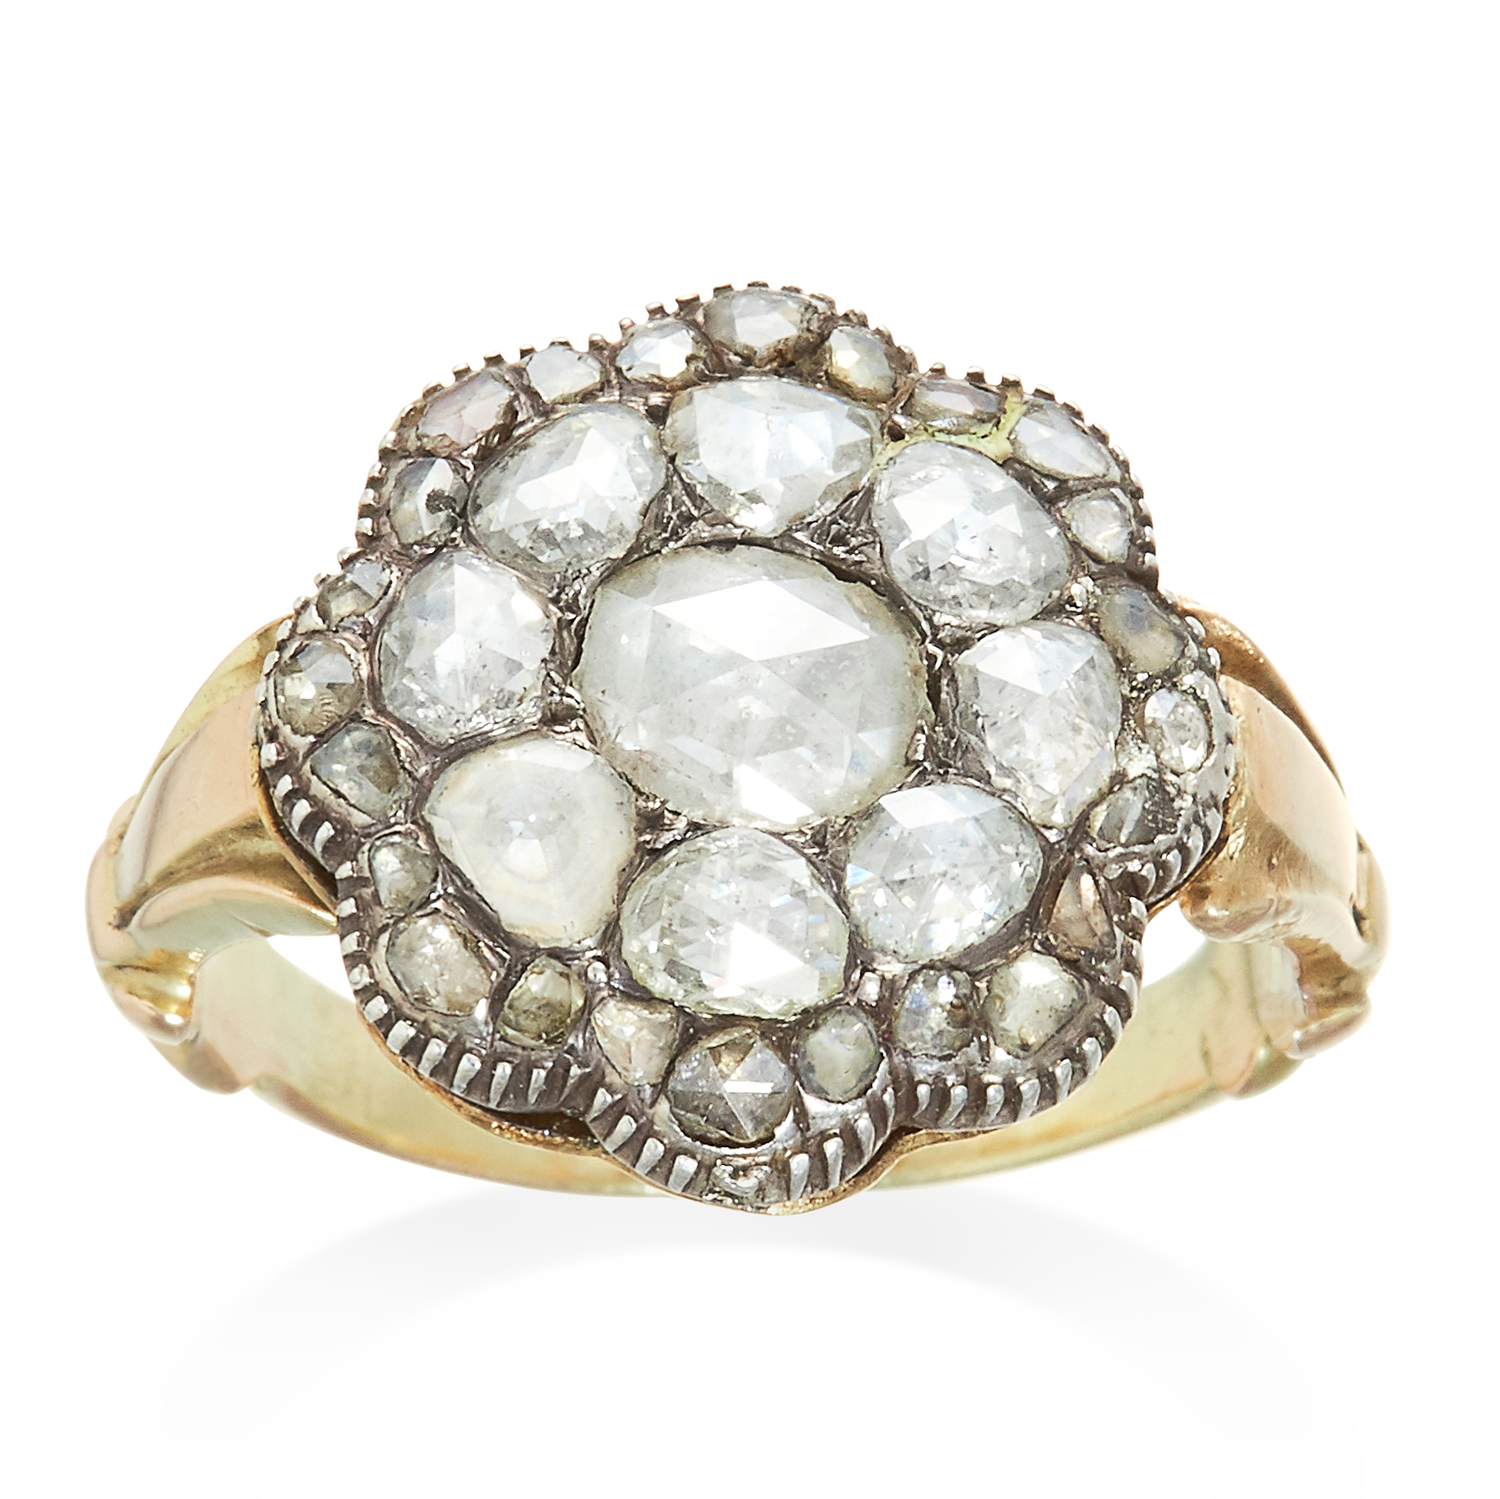 Los 340 - AN ANTIQUE DIAMOND CLUSTER RING, 19TH CENTURY in yellow gold and silver, formed of concentric rows